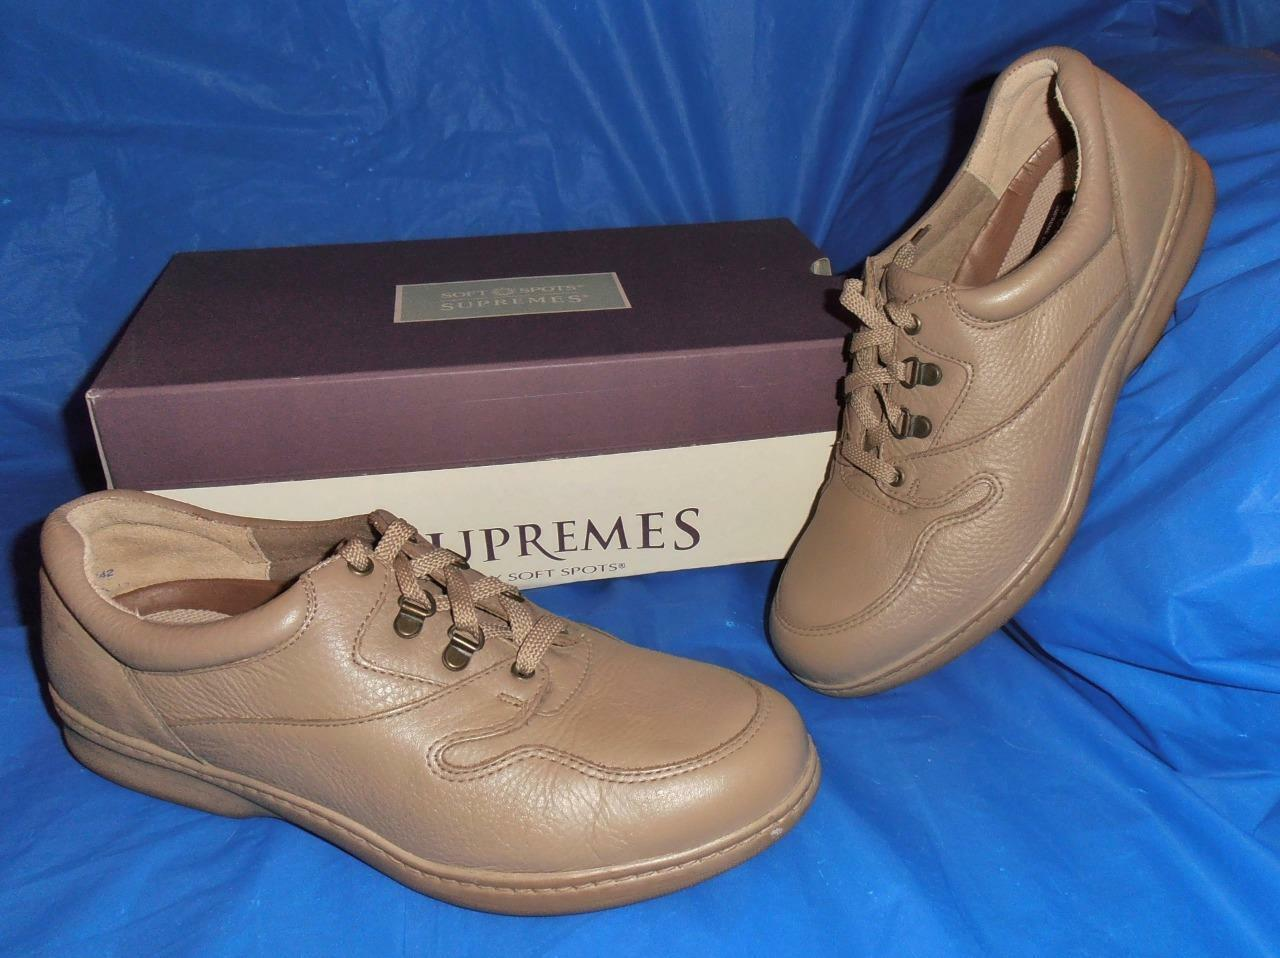 Soft Spots Spots Spots Supremes, Soft Taupe Leather, Women's  Size 11 W ....New Old Stock 04f335